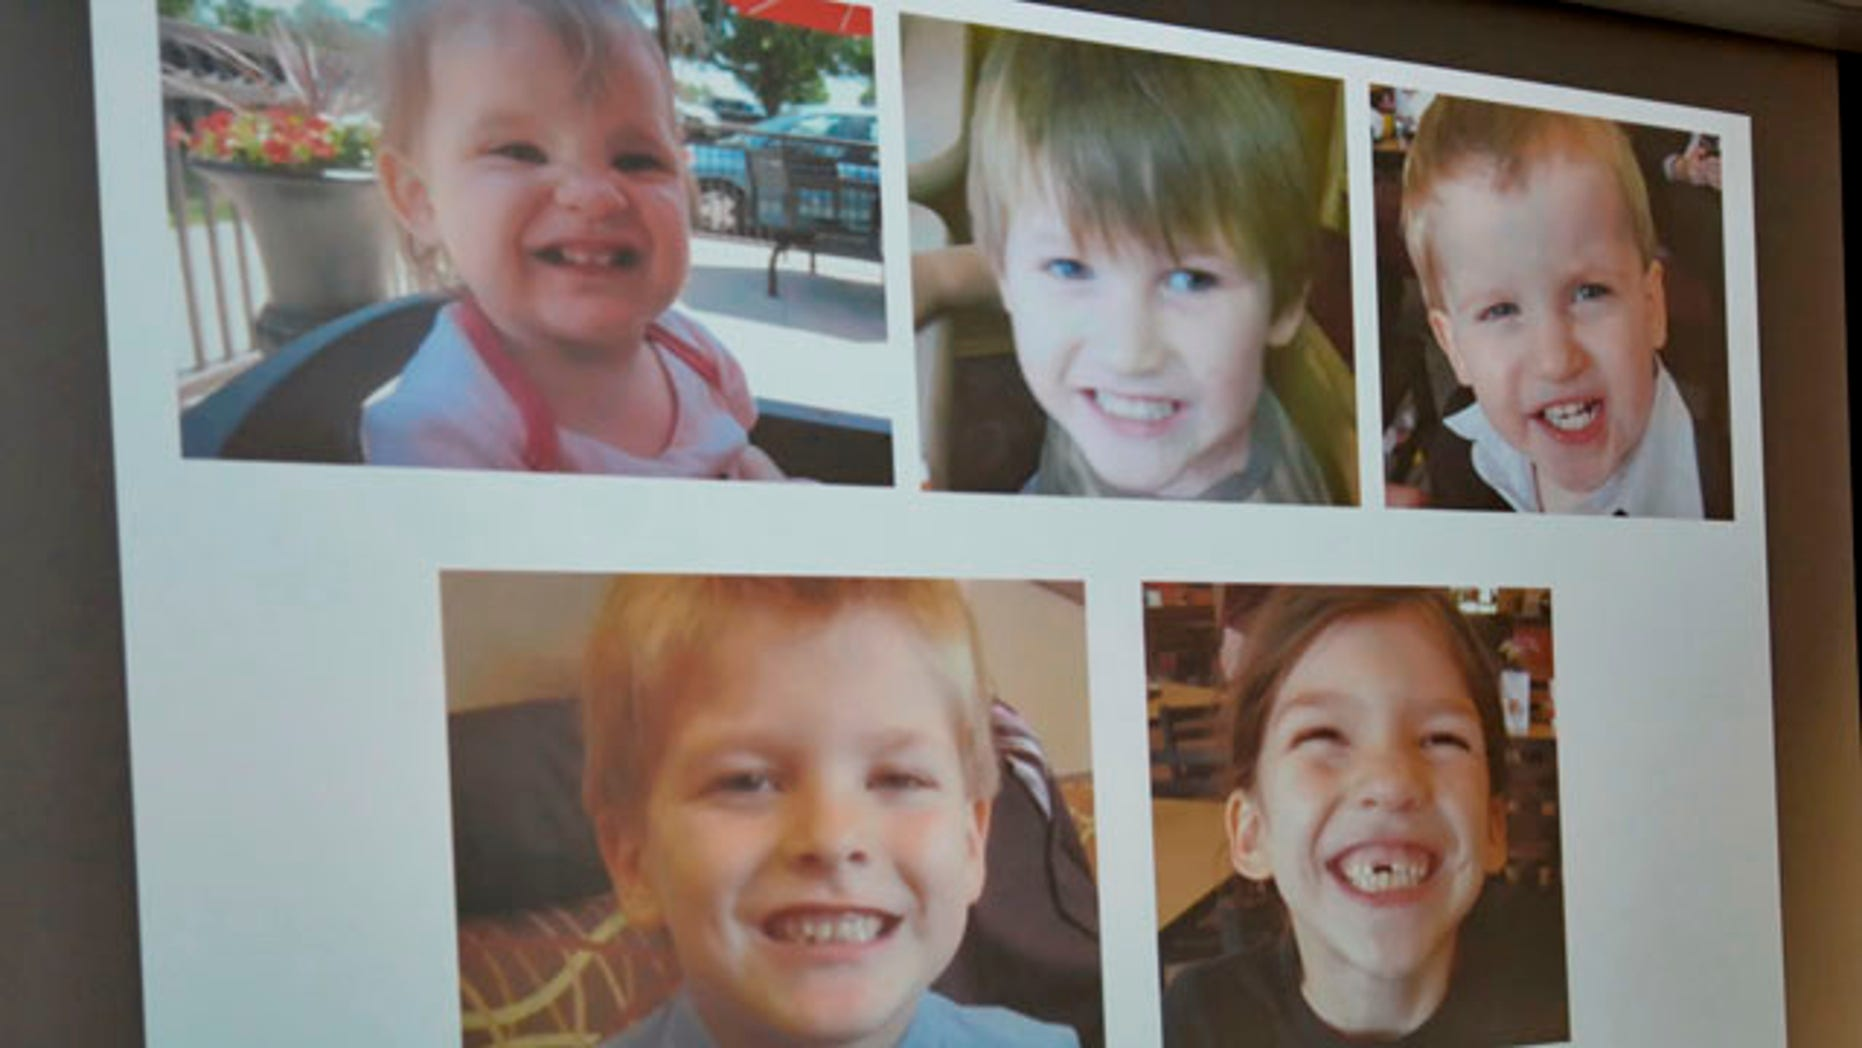 September 10, 2014: Photos of Timothy Ray Jones Jr.'s children are on display during a news conference at the Lexington County Sheriff's Dept Training Center in Lexington, S.C. Jones Jr., 32, is charged with murder in the deaths of his five children after he led authorities to a secluded clearing in Alabama, where their bodies were found wrapped in garbage bags, a sheriff said Wednesday.  (AP Photo/ Richard Shiro)